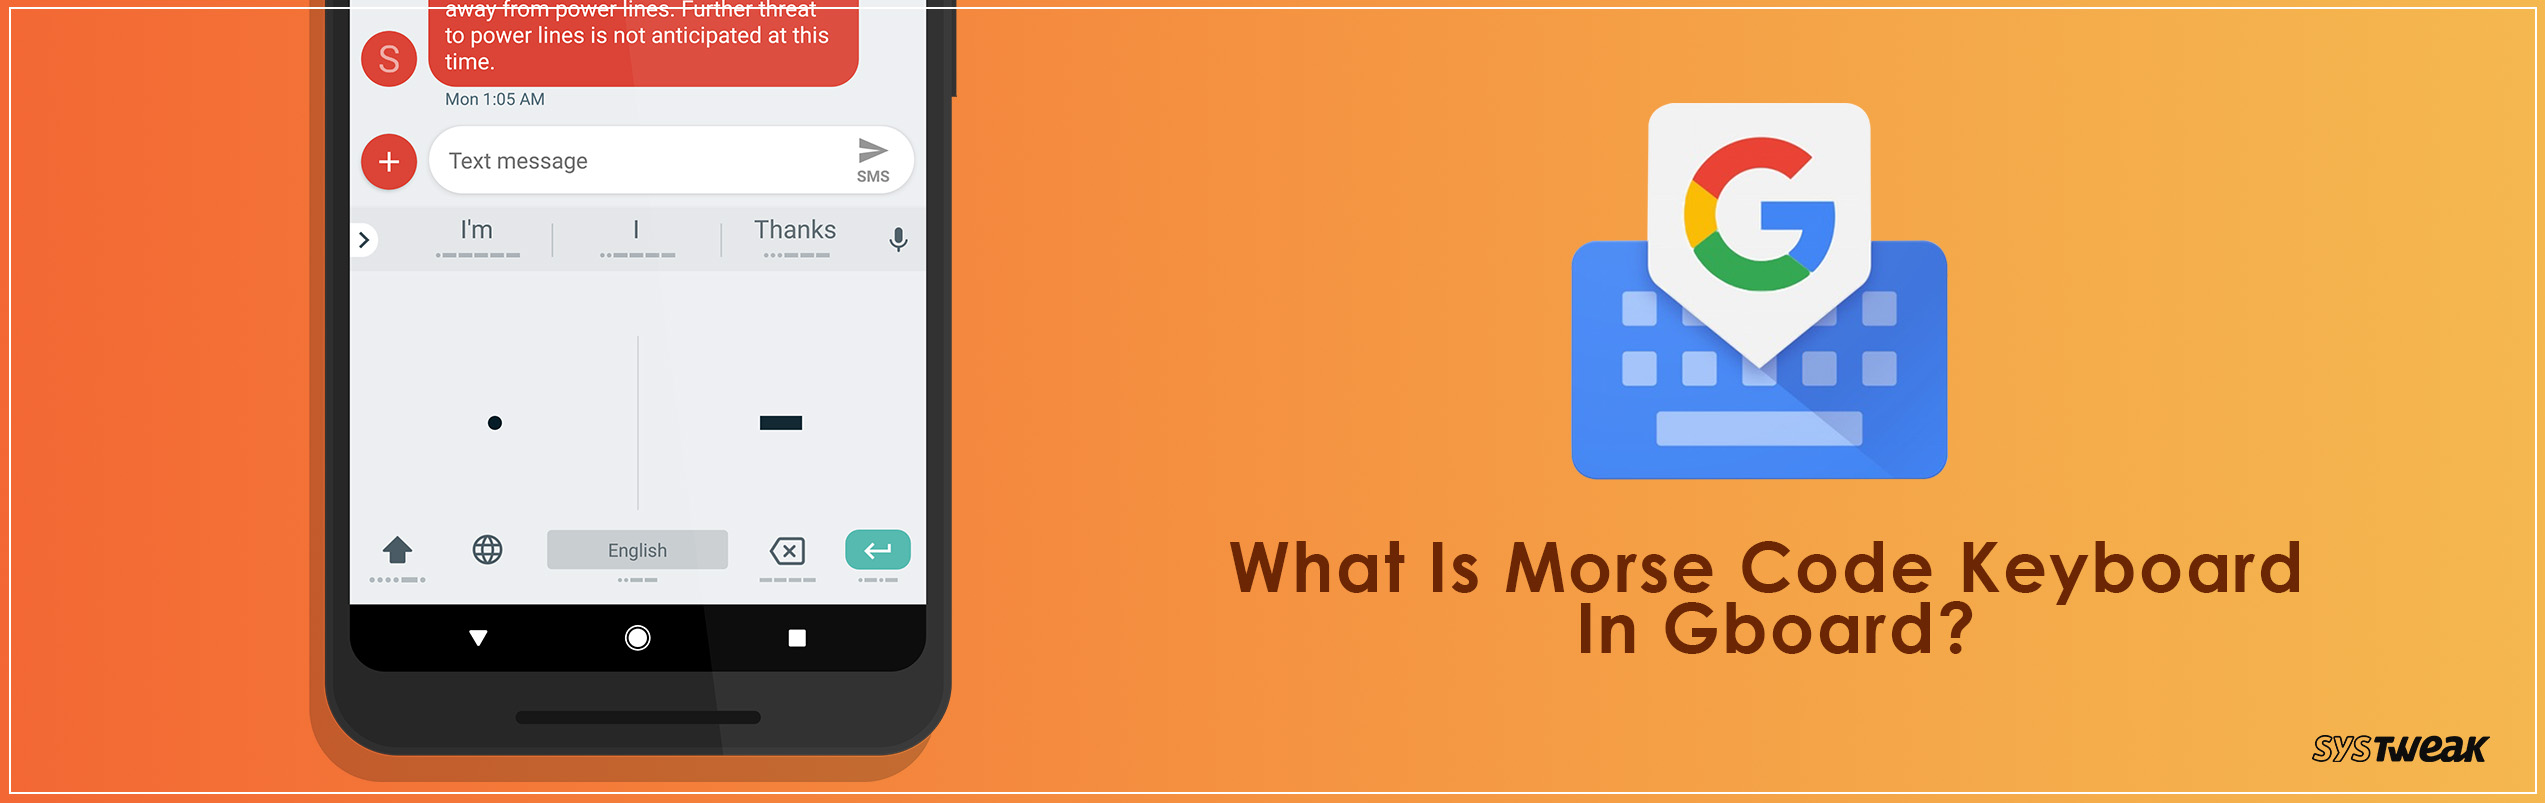 Morse Code Keyboard In Gboard: How To Use It?